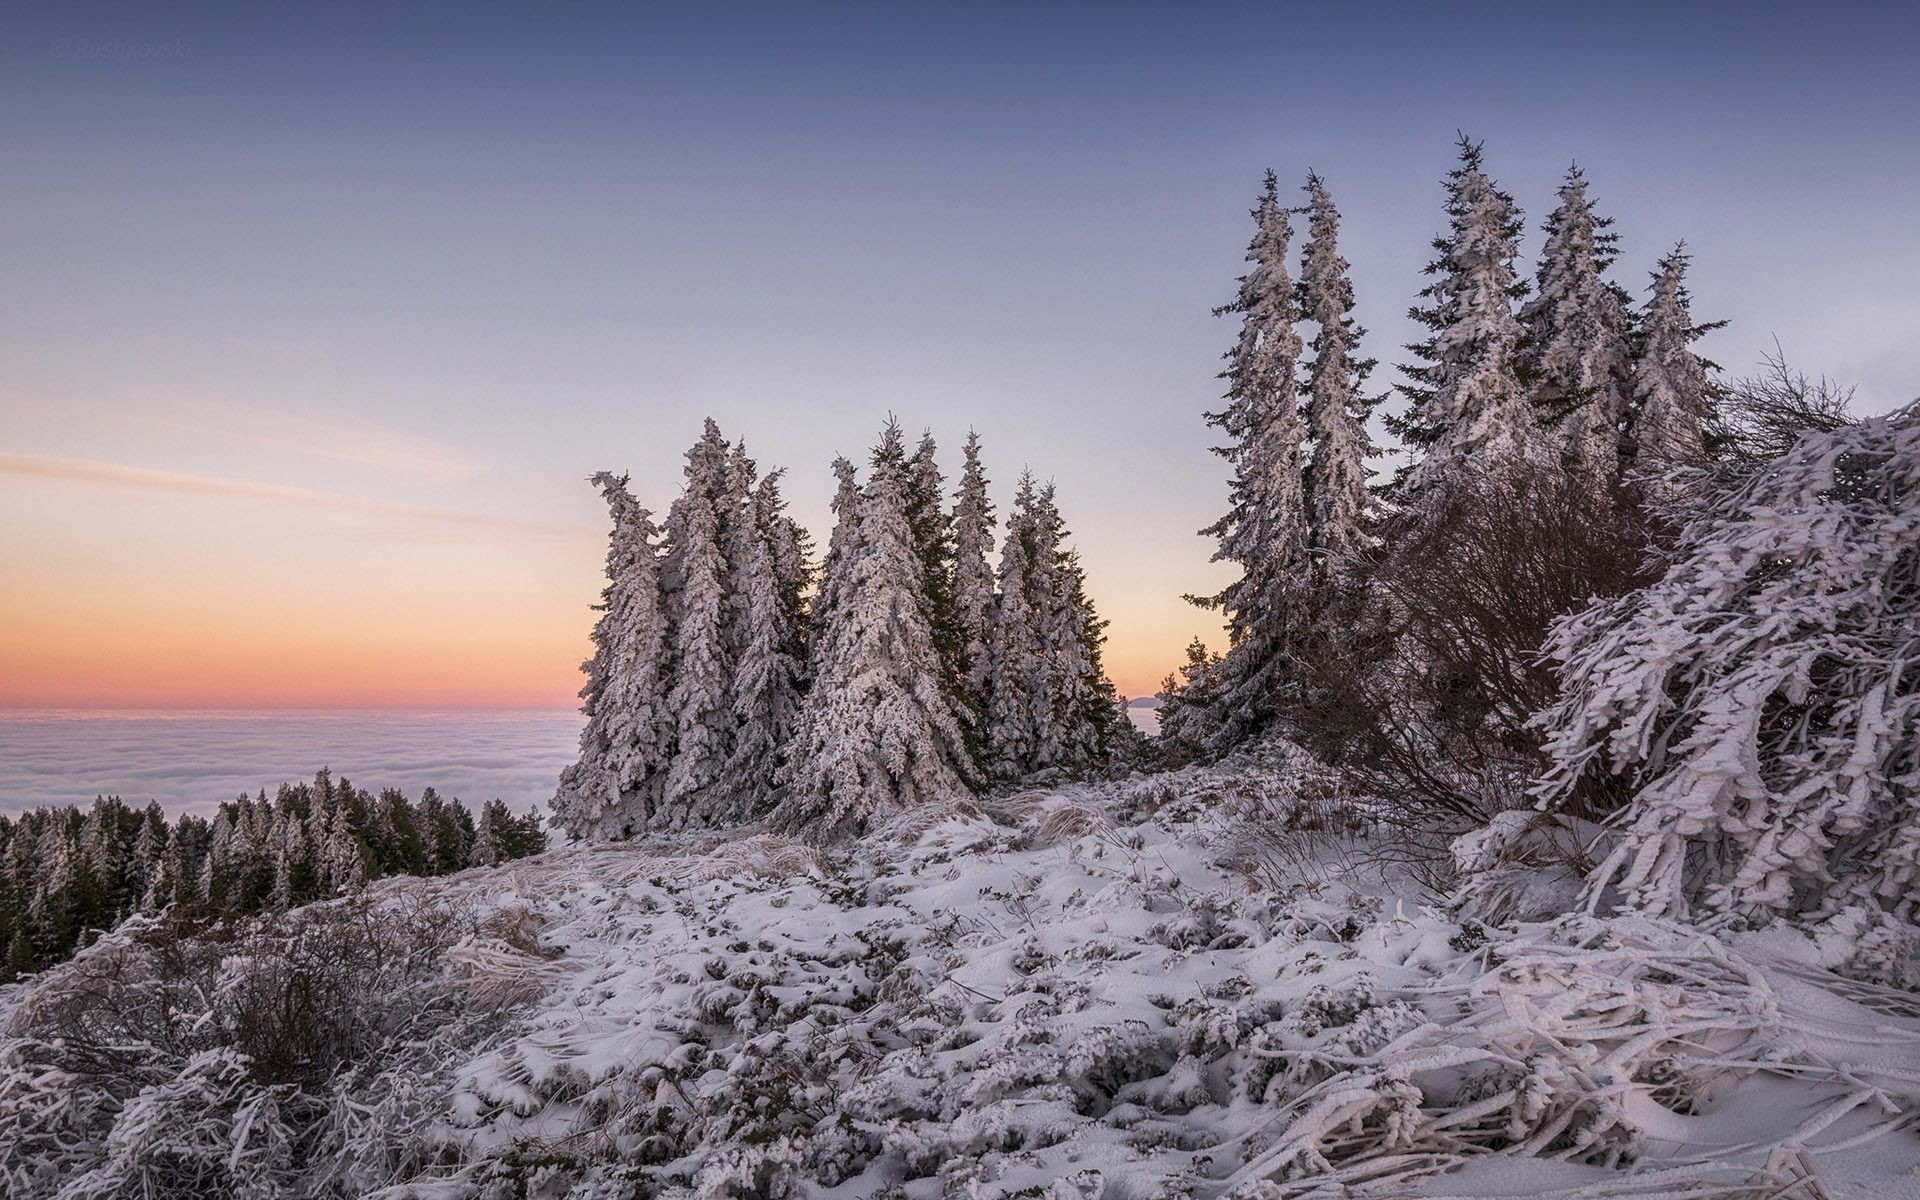 Snowy trees above the clouds Wallpaper 25026